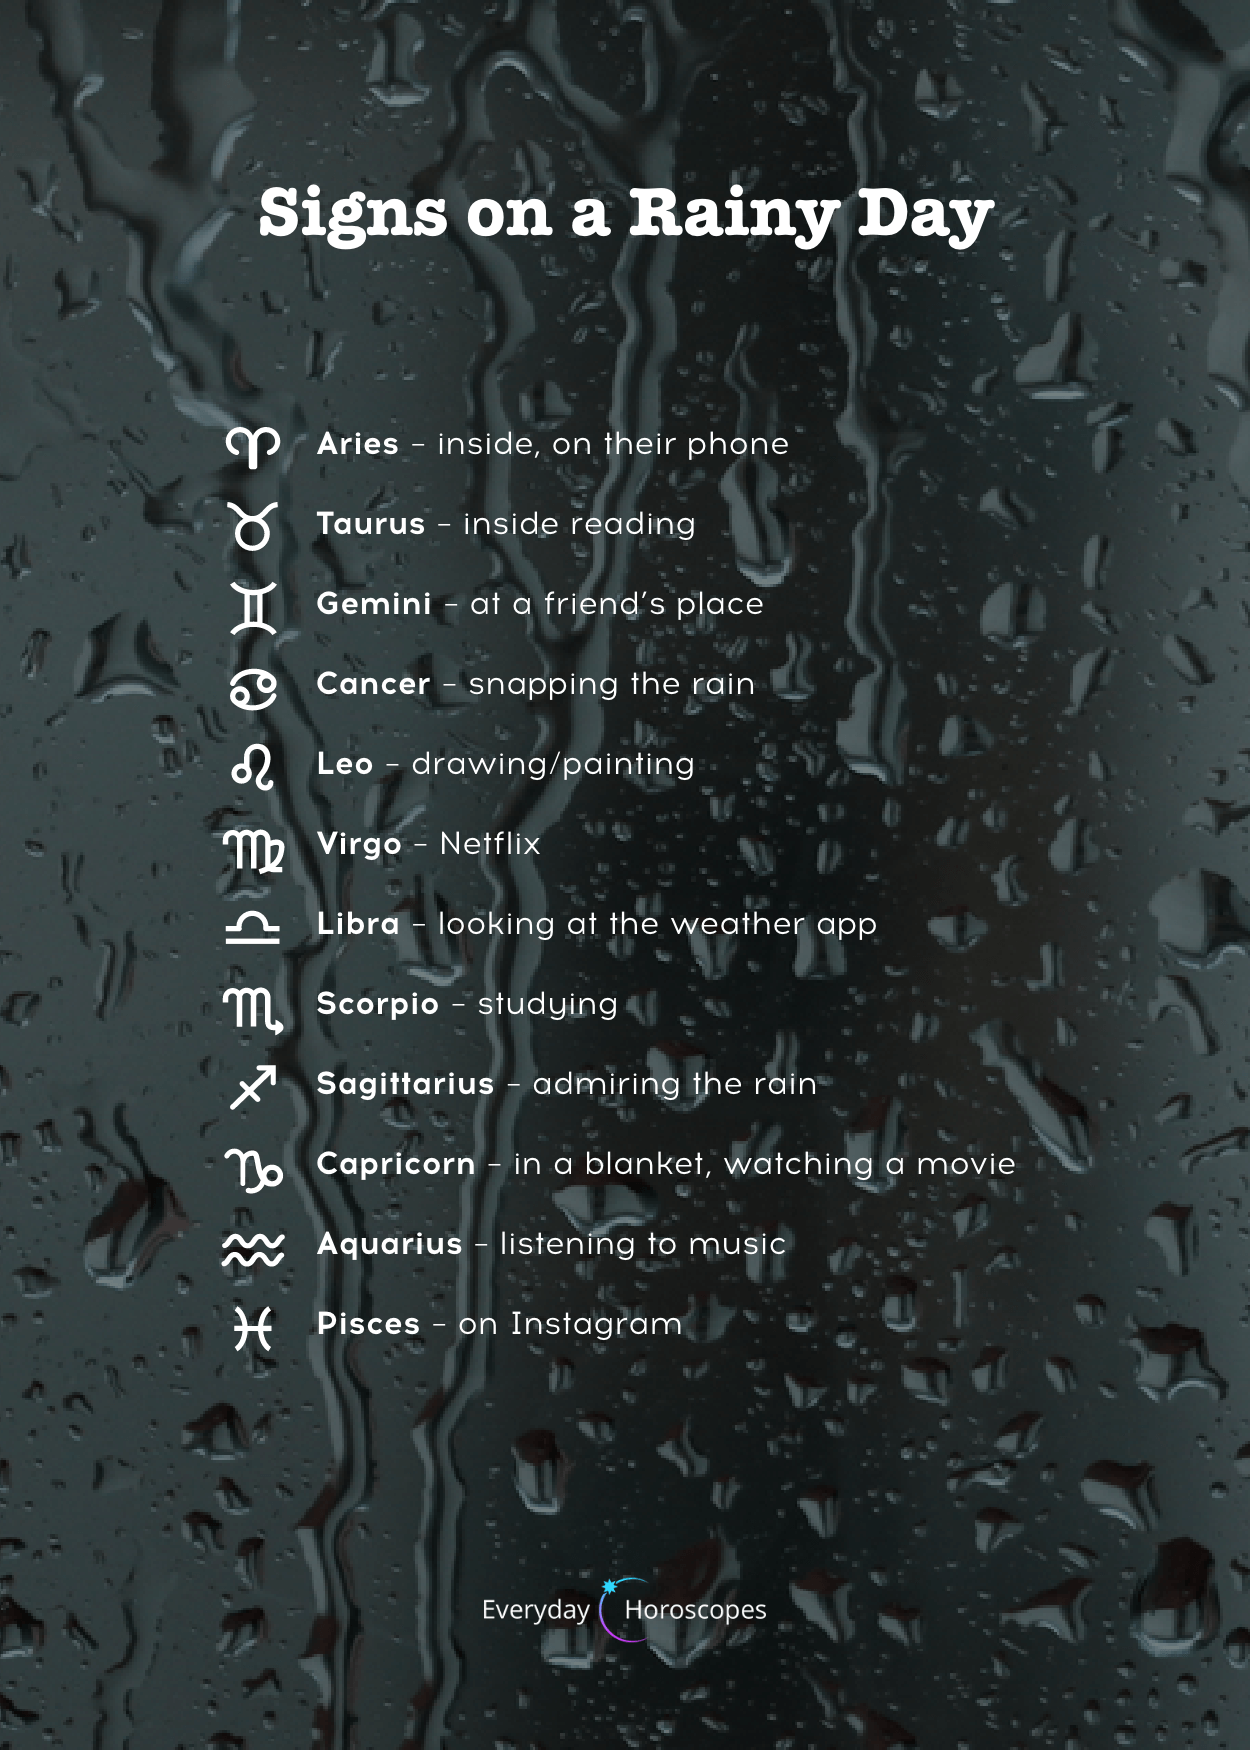 a little more than just horoscope insights #zodiacsigns #dailyhoroscope #todayhoroscope #horoscope #zodiacsigns That's what zodiac signs do on a rainy day. Do you do it too? #zodiacsigns a little more than just horoscope insights #zodiacsigns #dailyhoroscope #todayhoroscope #horoscope #zodiacsigns That's what zodiac signs do on a rainy day. Do you do it too?